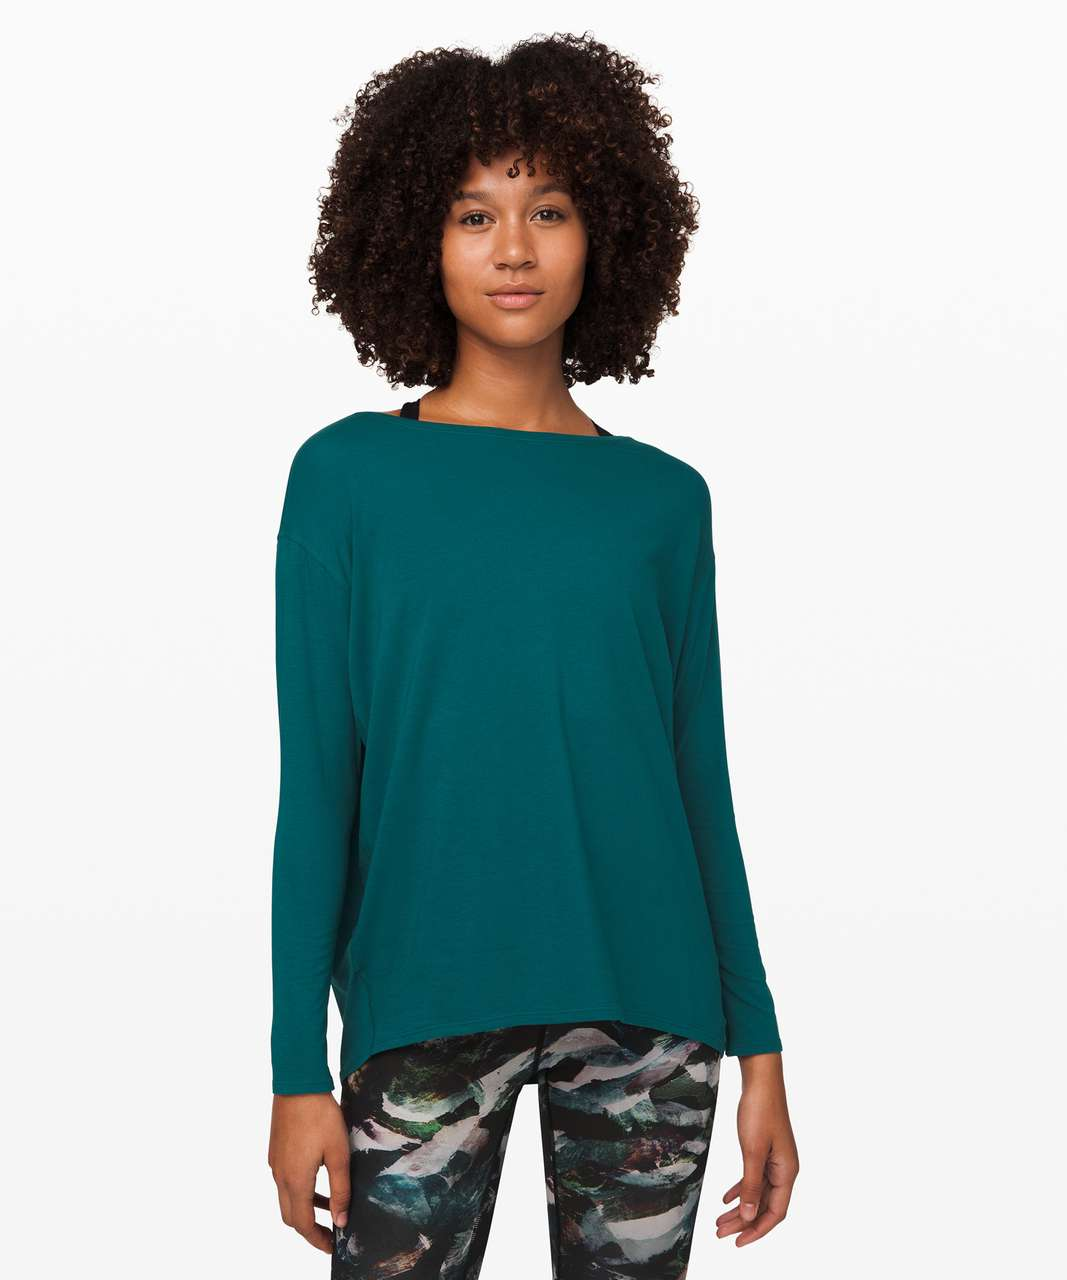 Lululemon Back In Action Long Sleeve - Emerald